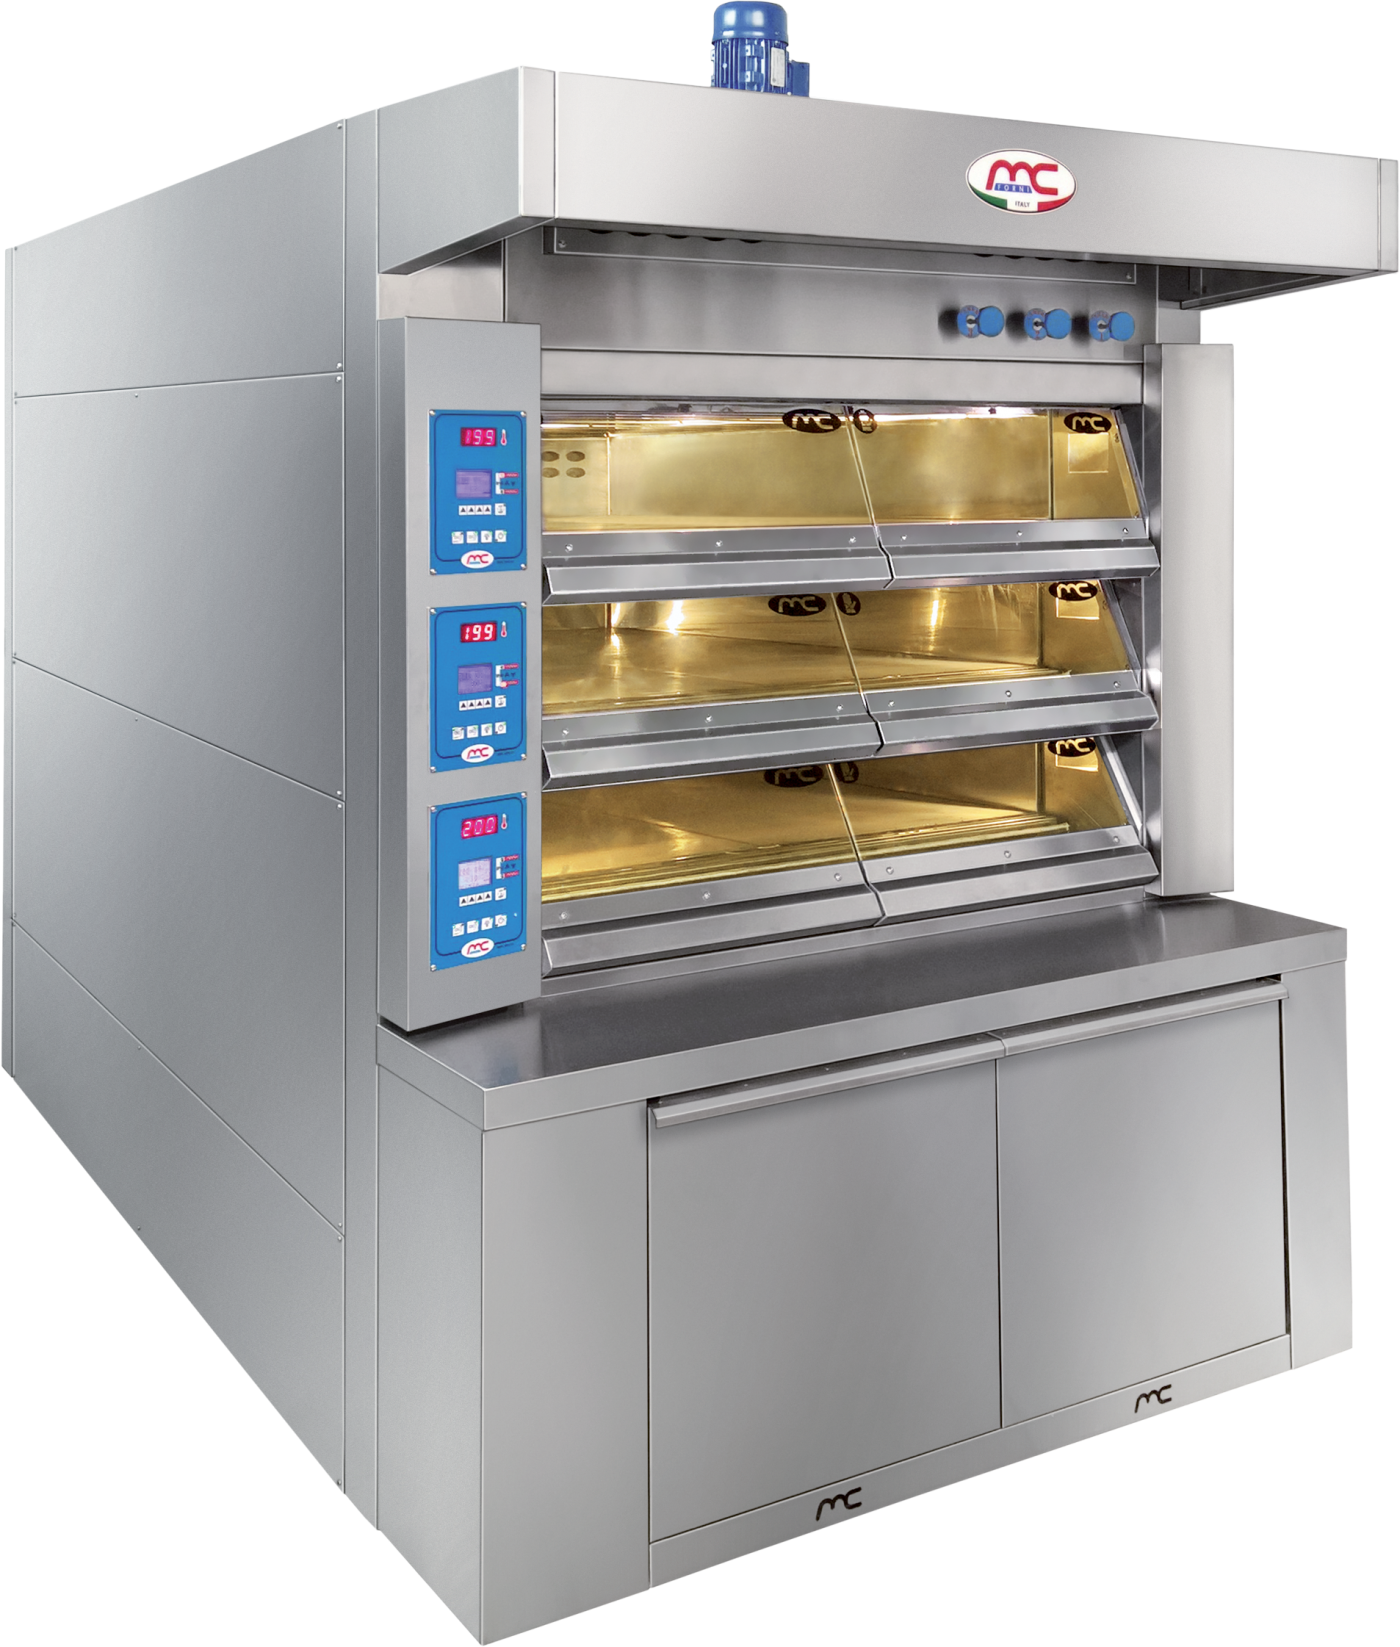 Shelf electric ovens for bread, focaccia bread, pizzas and cakes